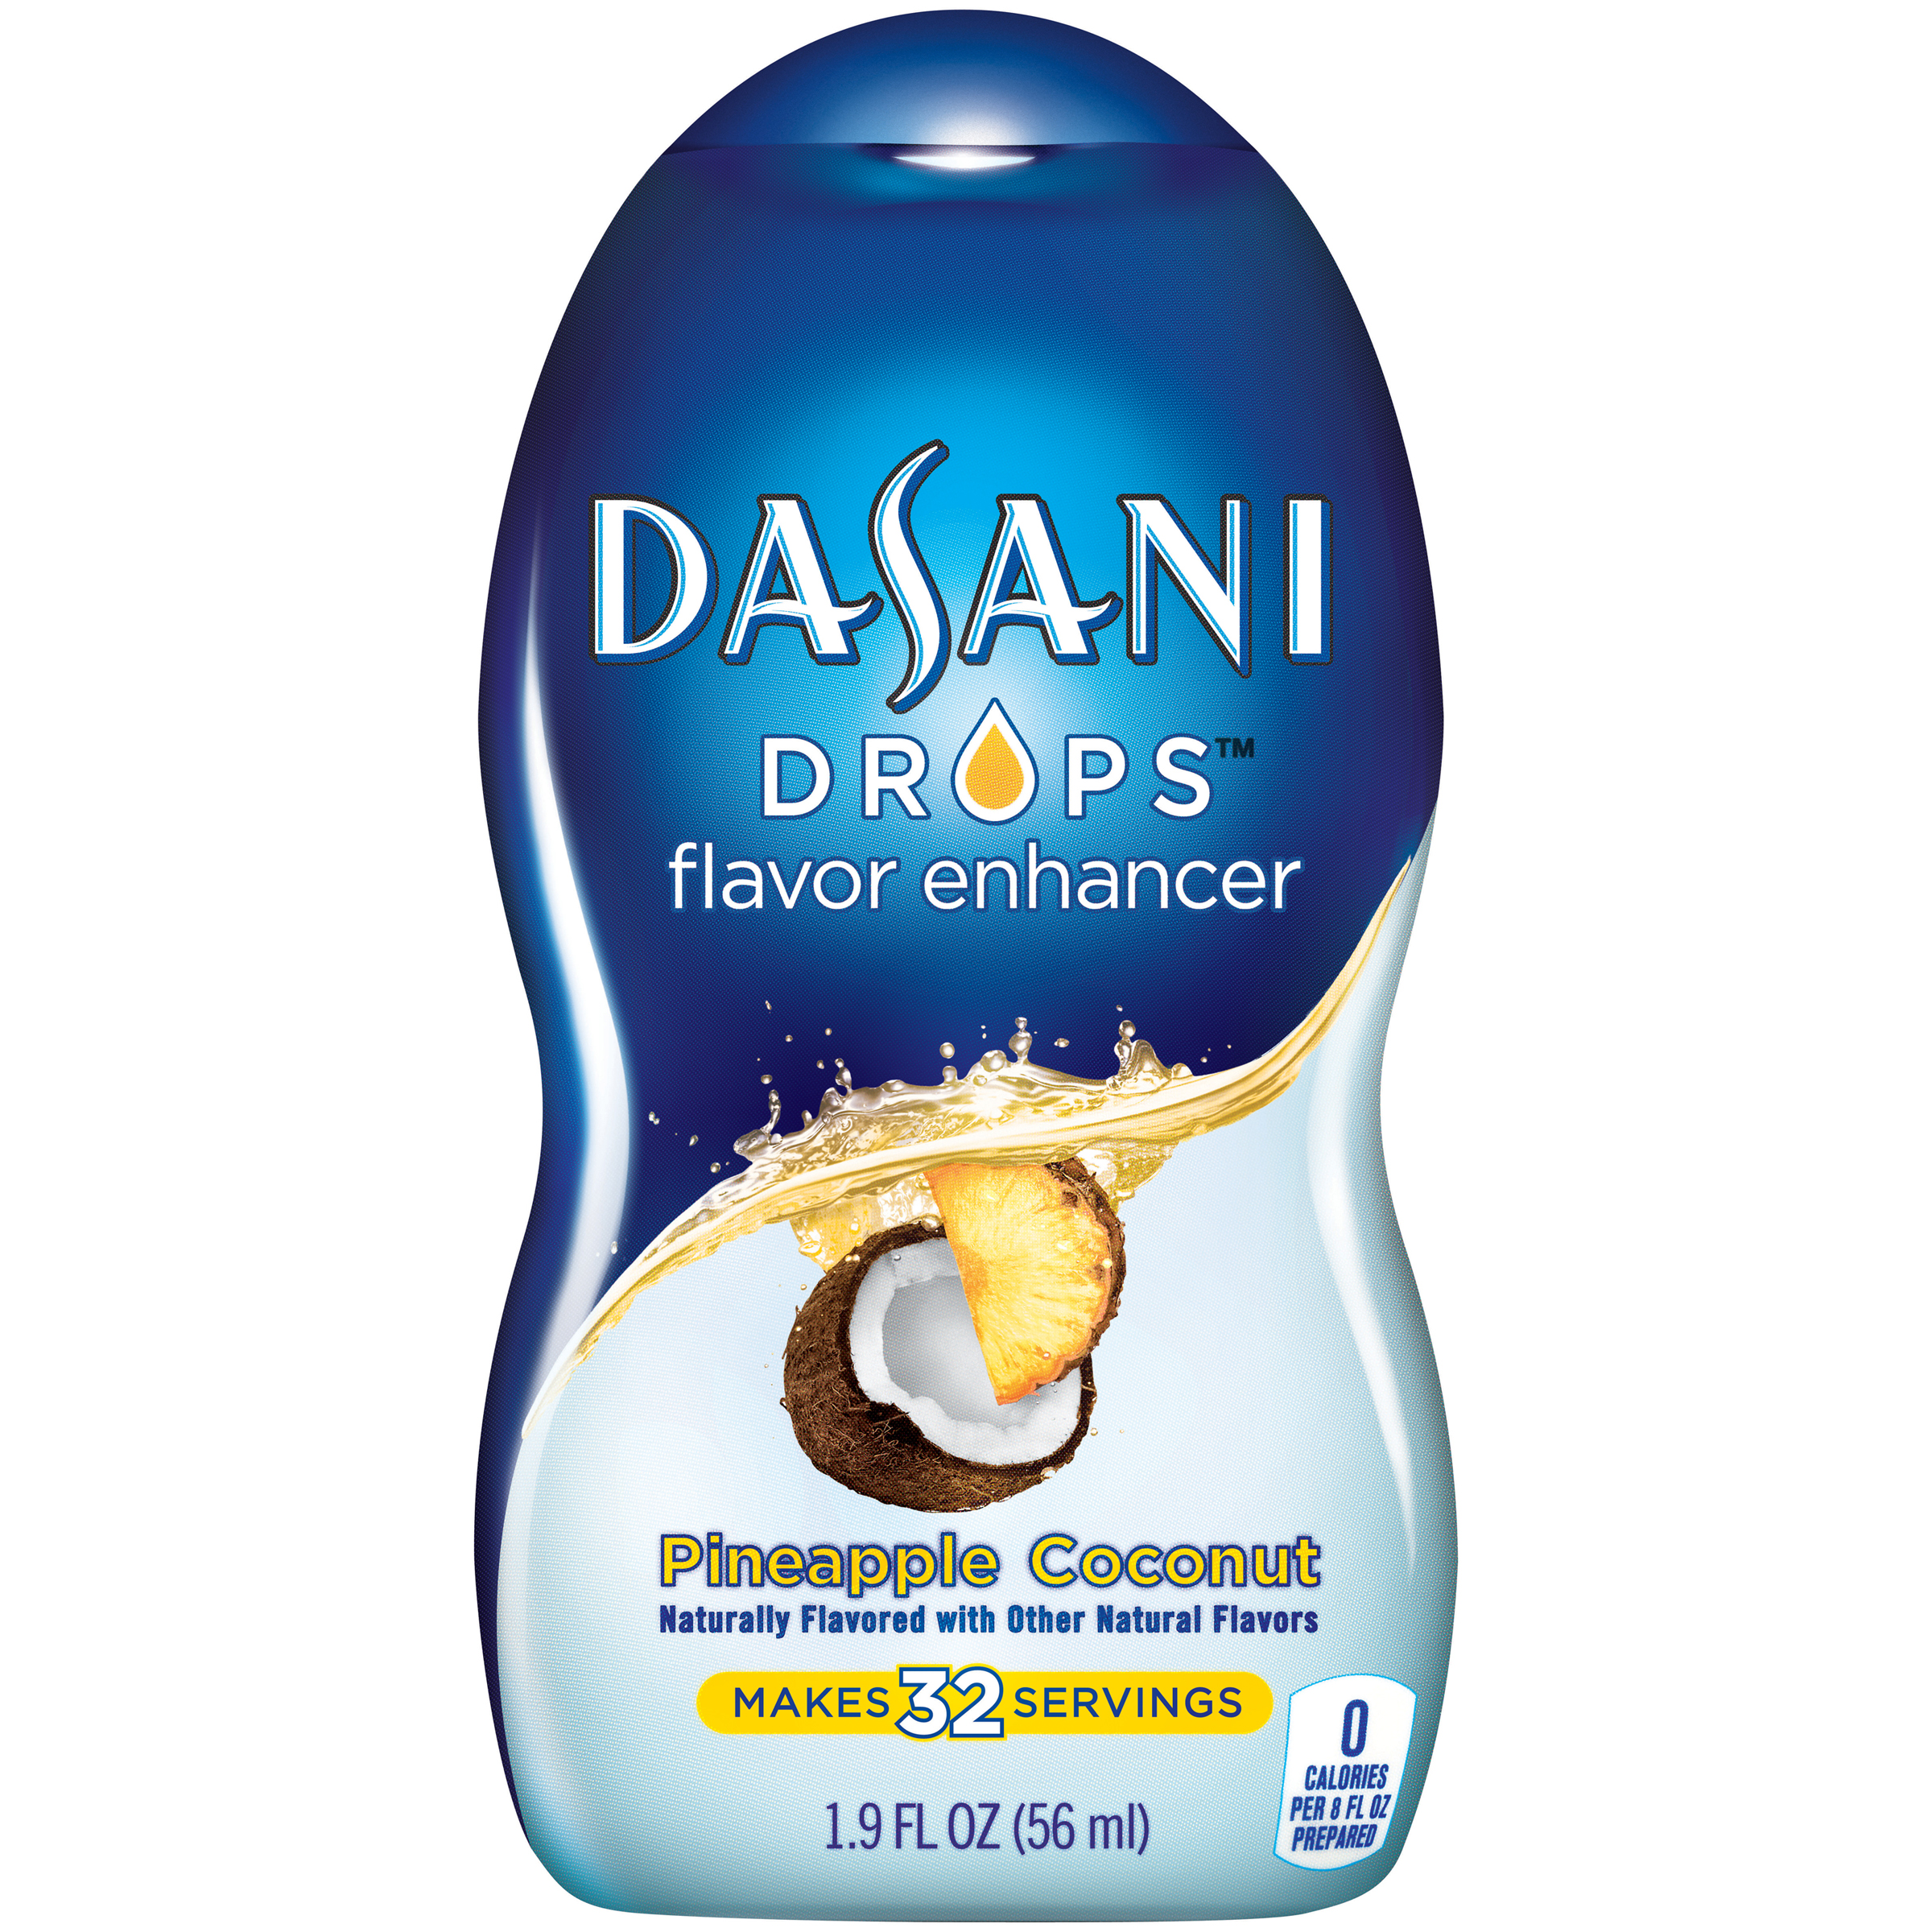 Dasani Drops Flavor Enhancer, Pineapple Coconut, 1.9 fl oz